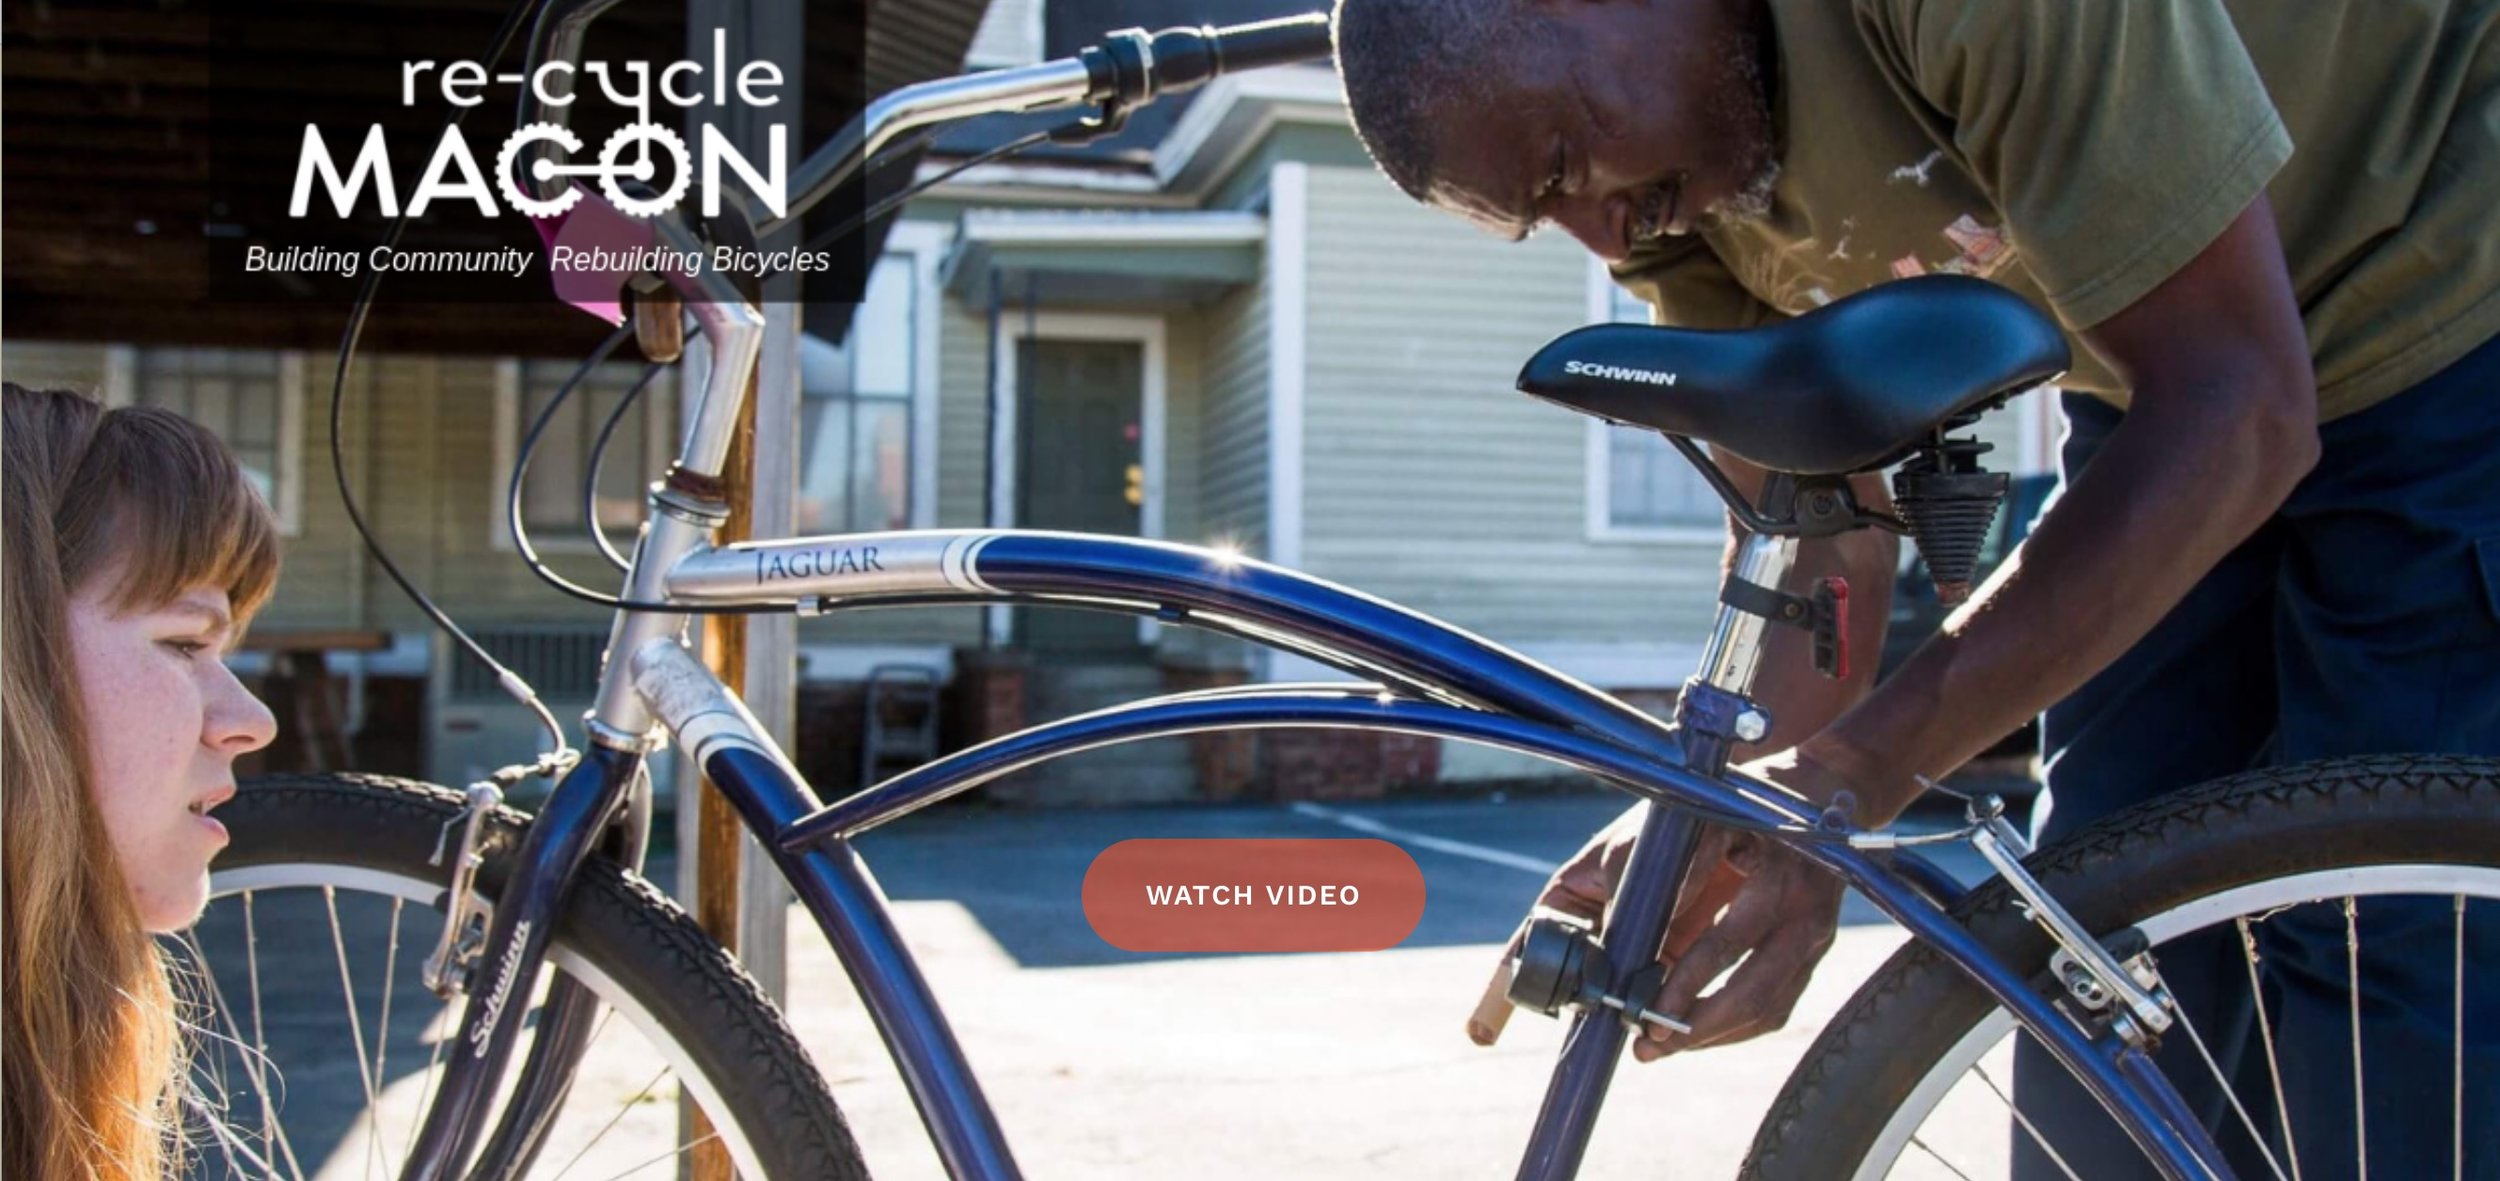 Visit  https://www.re-cyclemacon.org to watch their wonderful new video featuring Ocie Lewis.